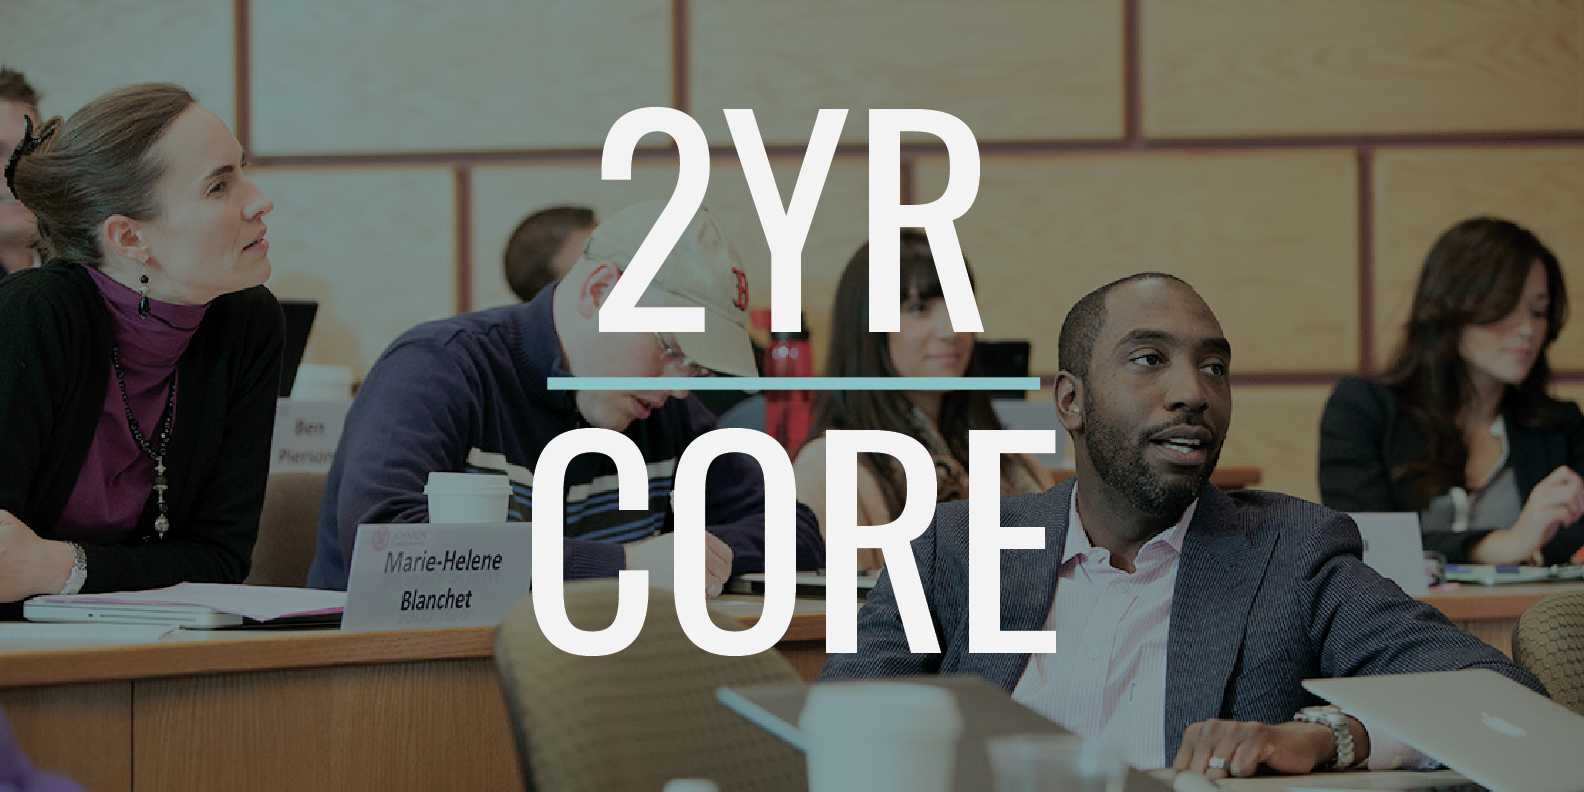 FINALS: 2YR MBA Class of 2022 Leading Teams Case Competition - EXACT TIME TO BE DETERMINED